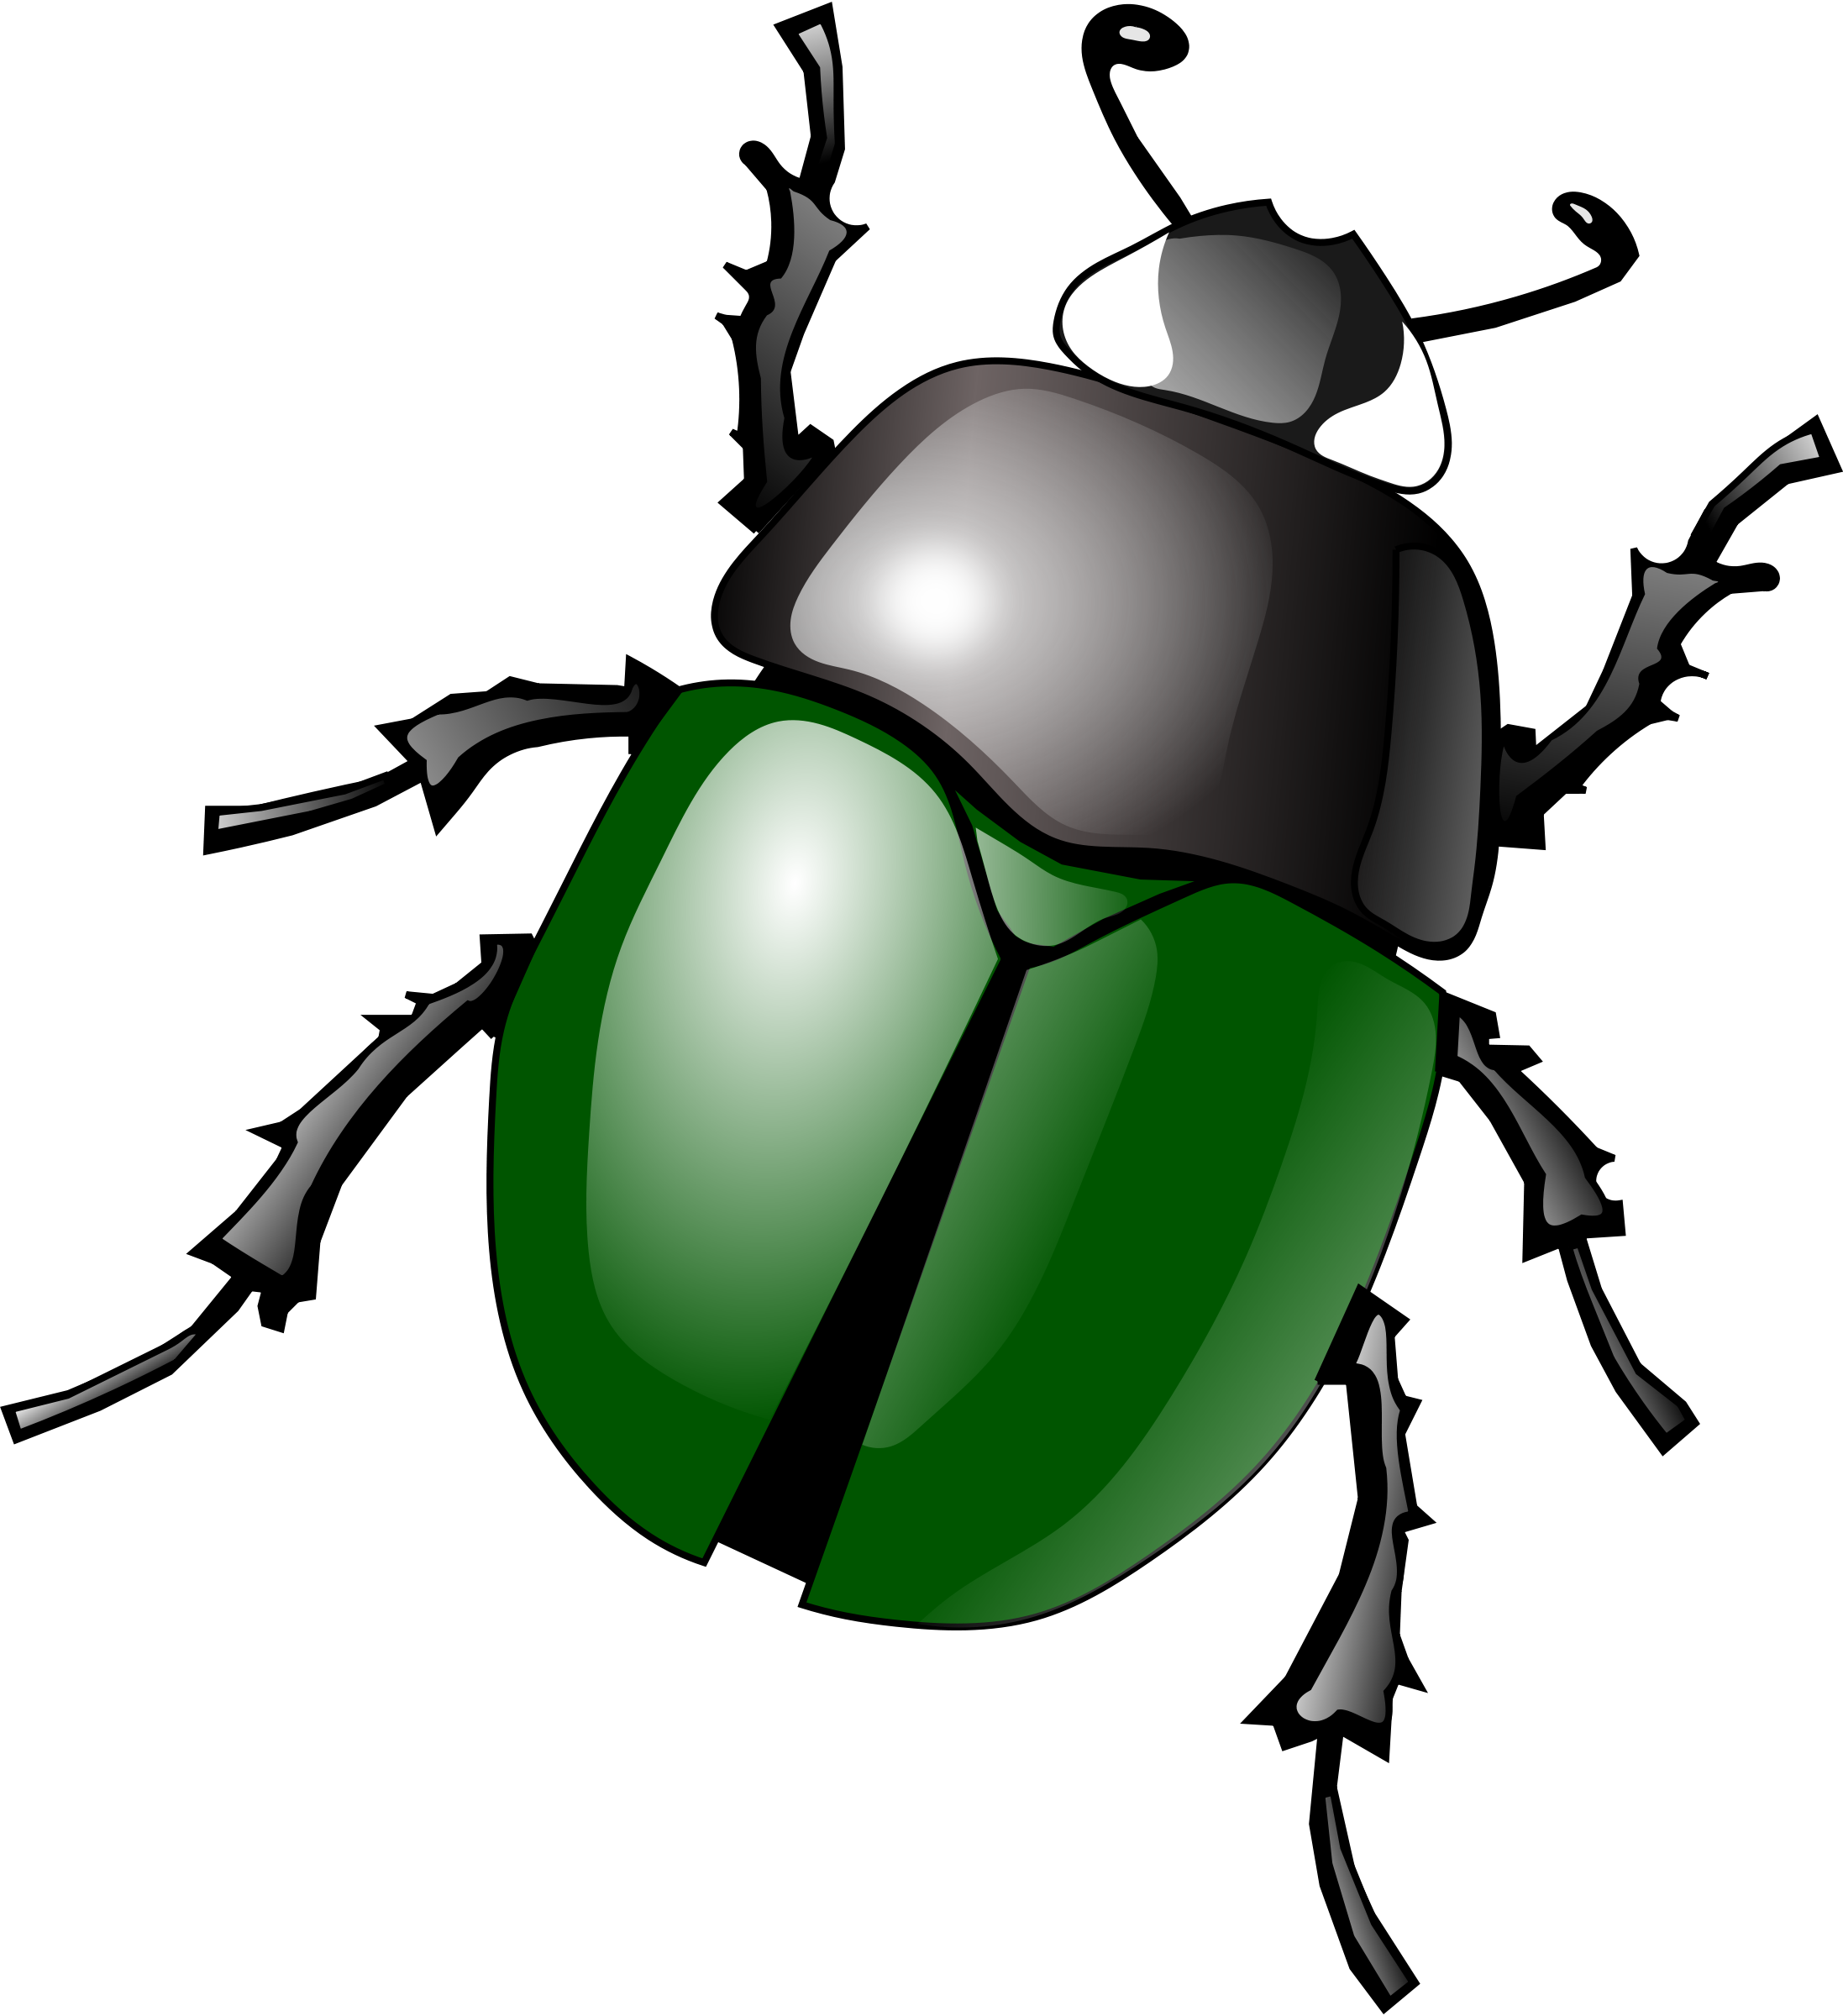 Images For Clip Art Bugs-Images For Clip Art Bugs-13